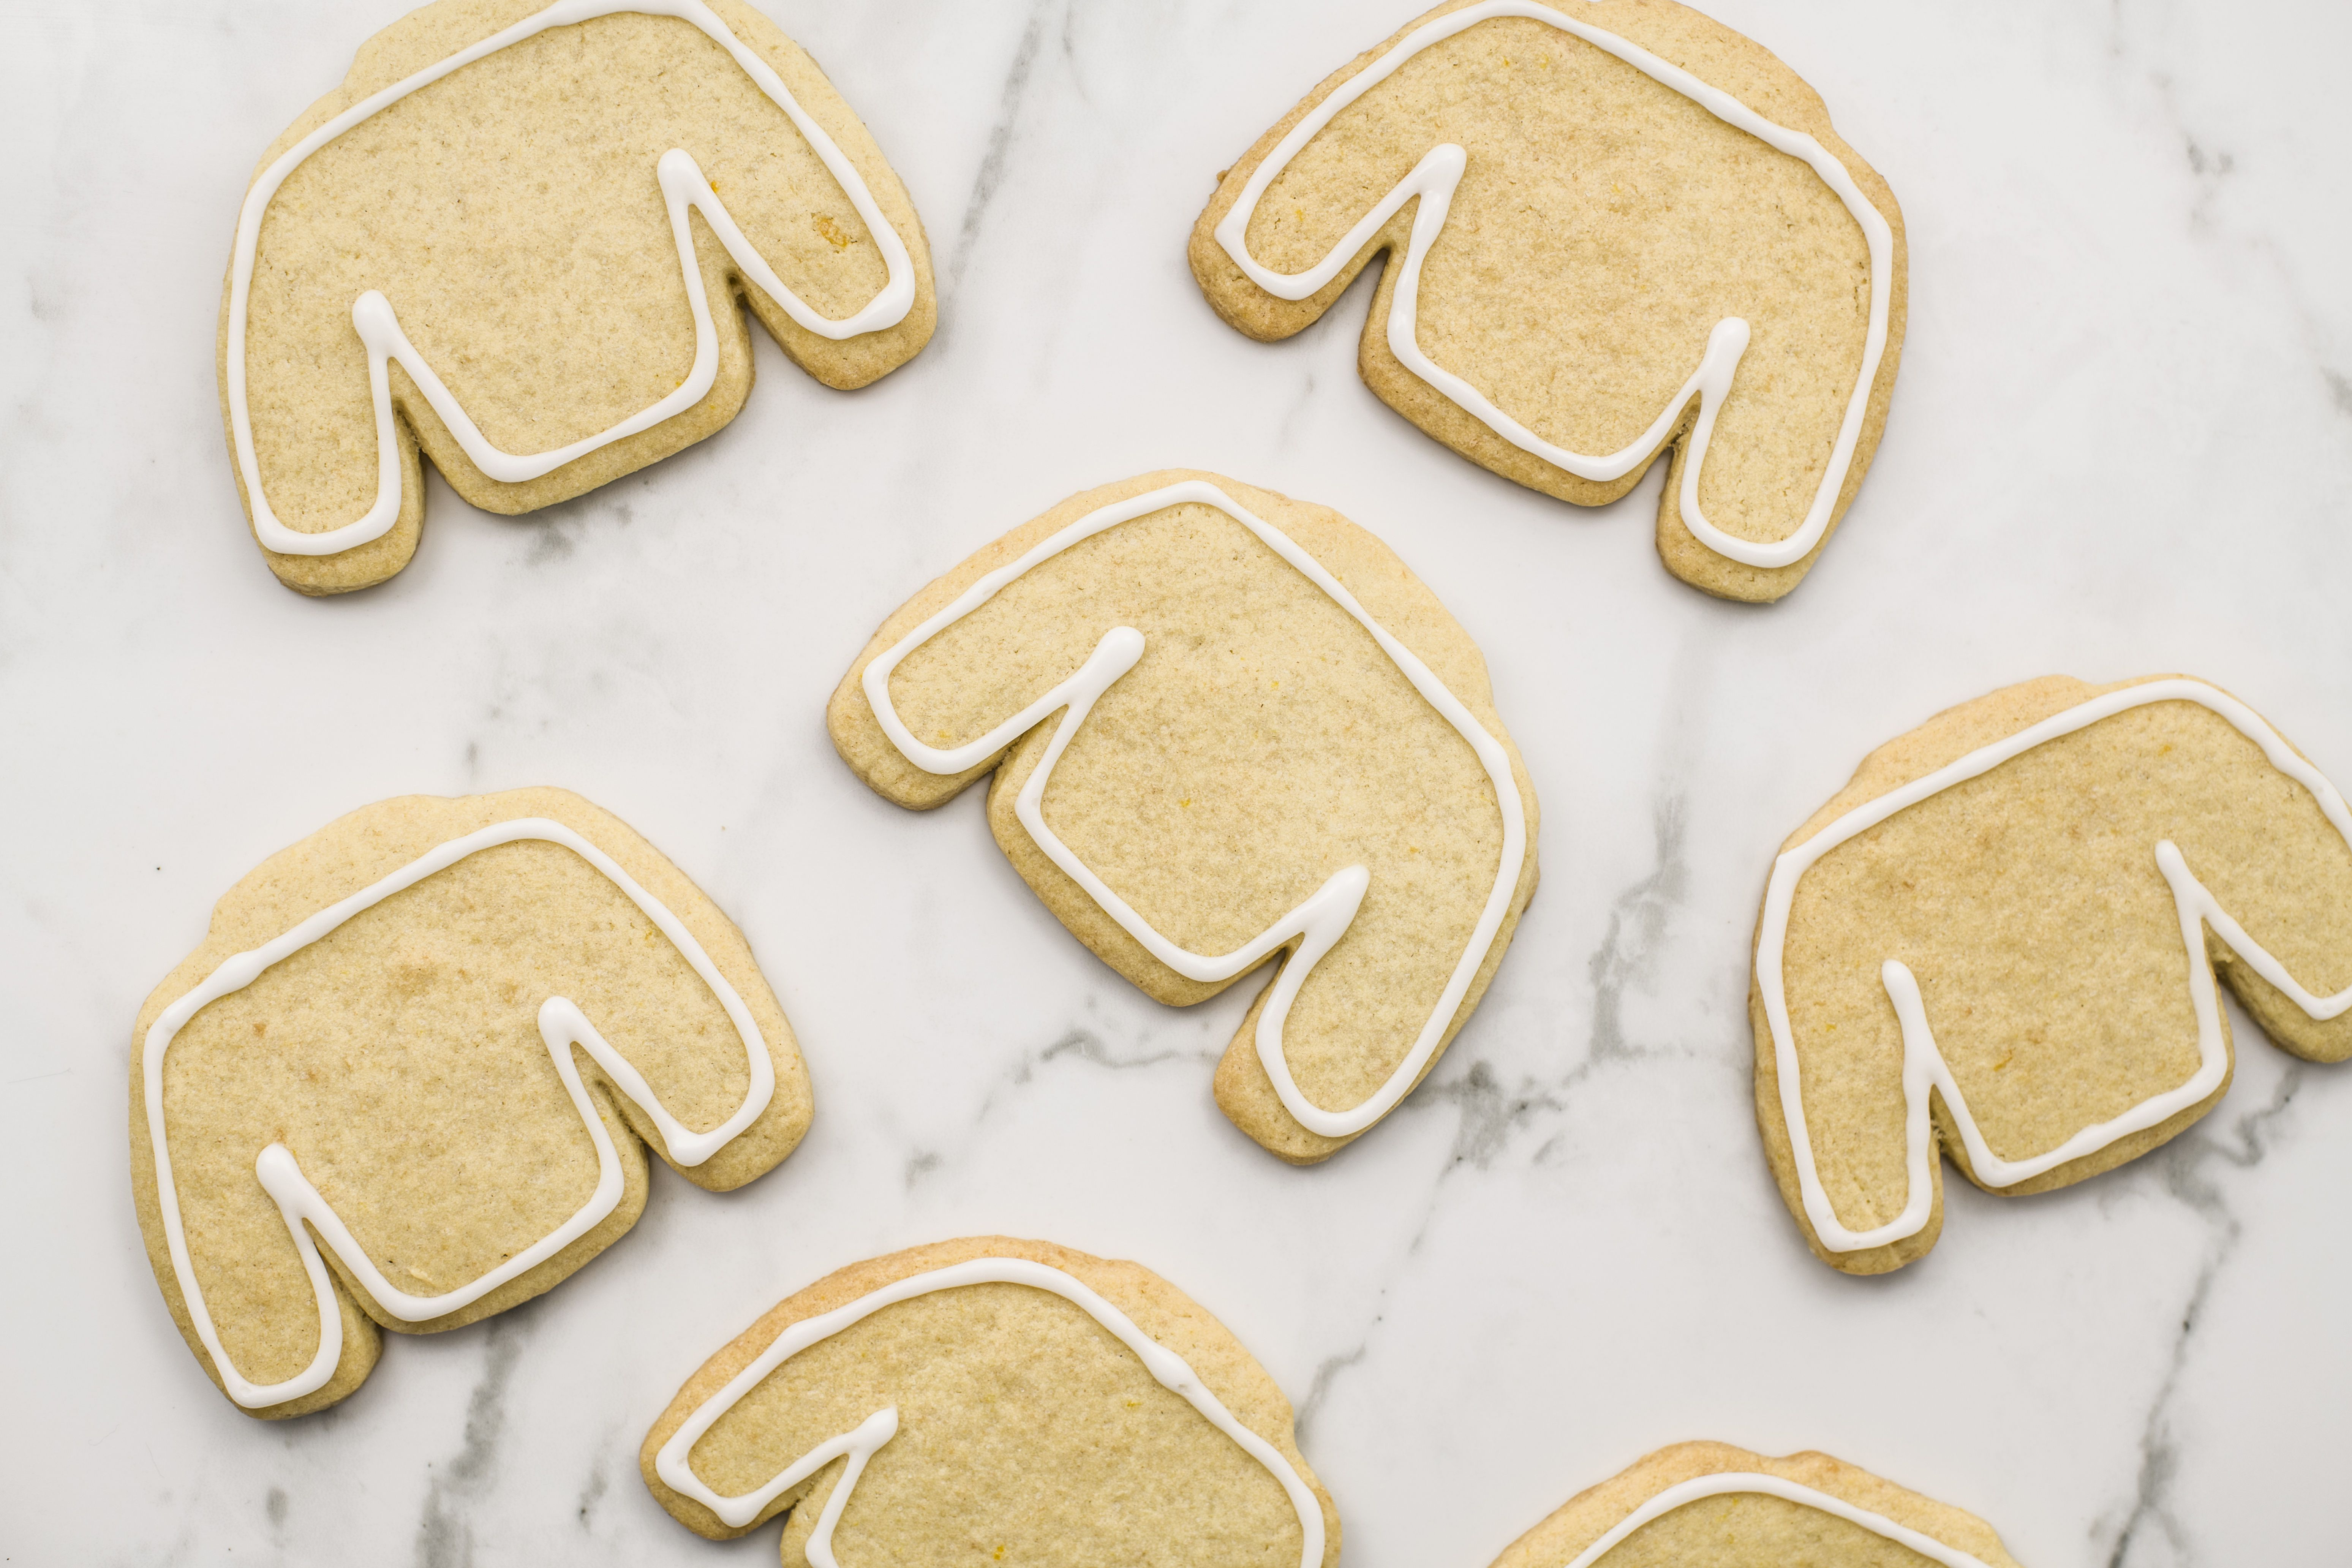 Edging the cookies with frosting